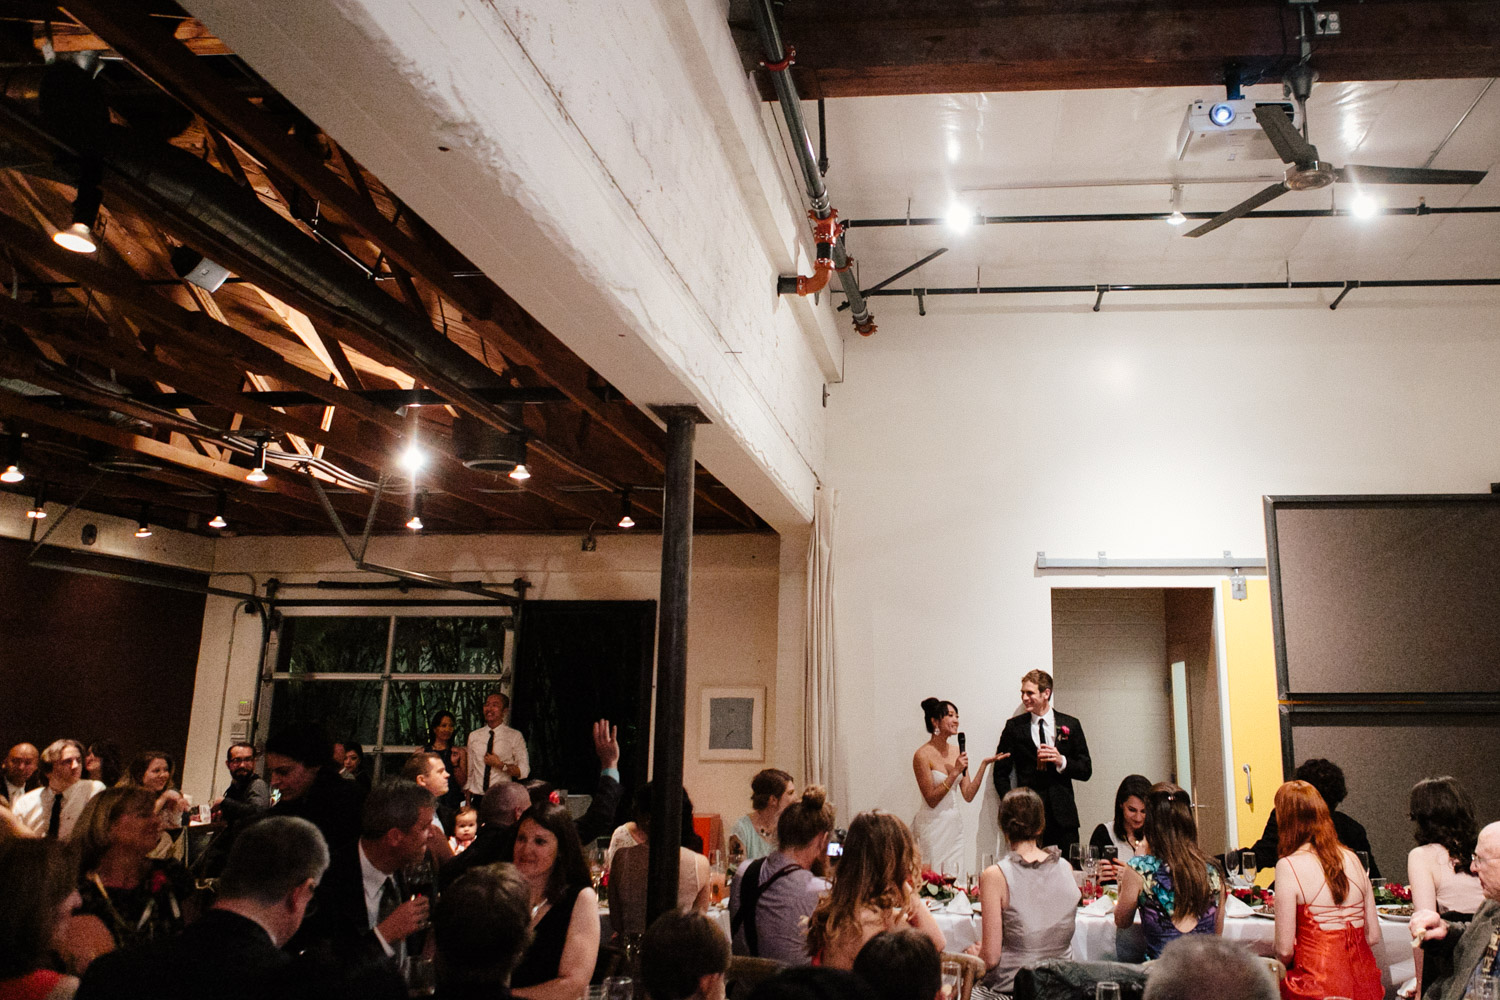 Los Angeles Wedding Photographer, The Elysian  - The Gathering Season x weareleoandkat 080.JPG